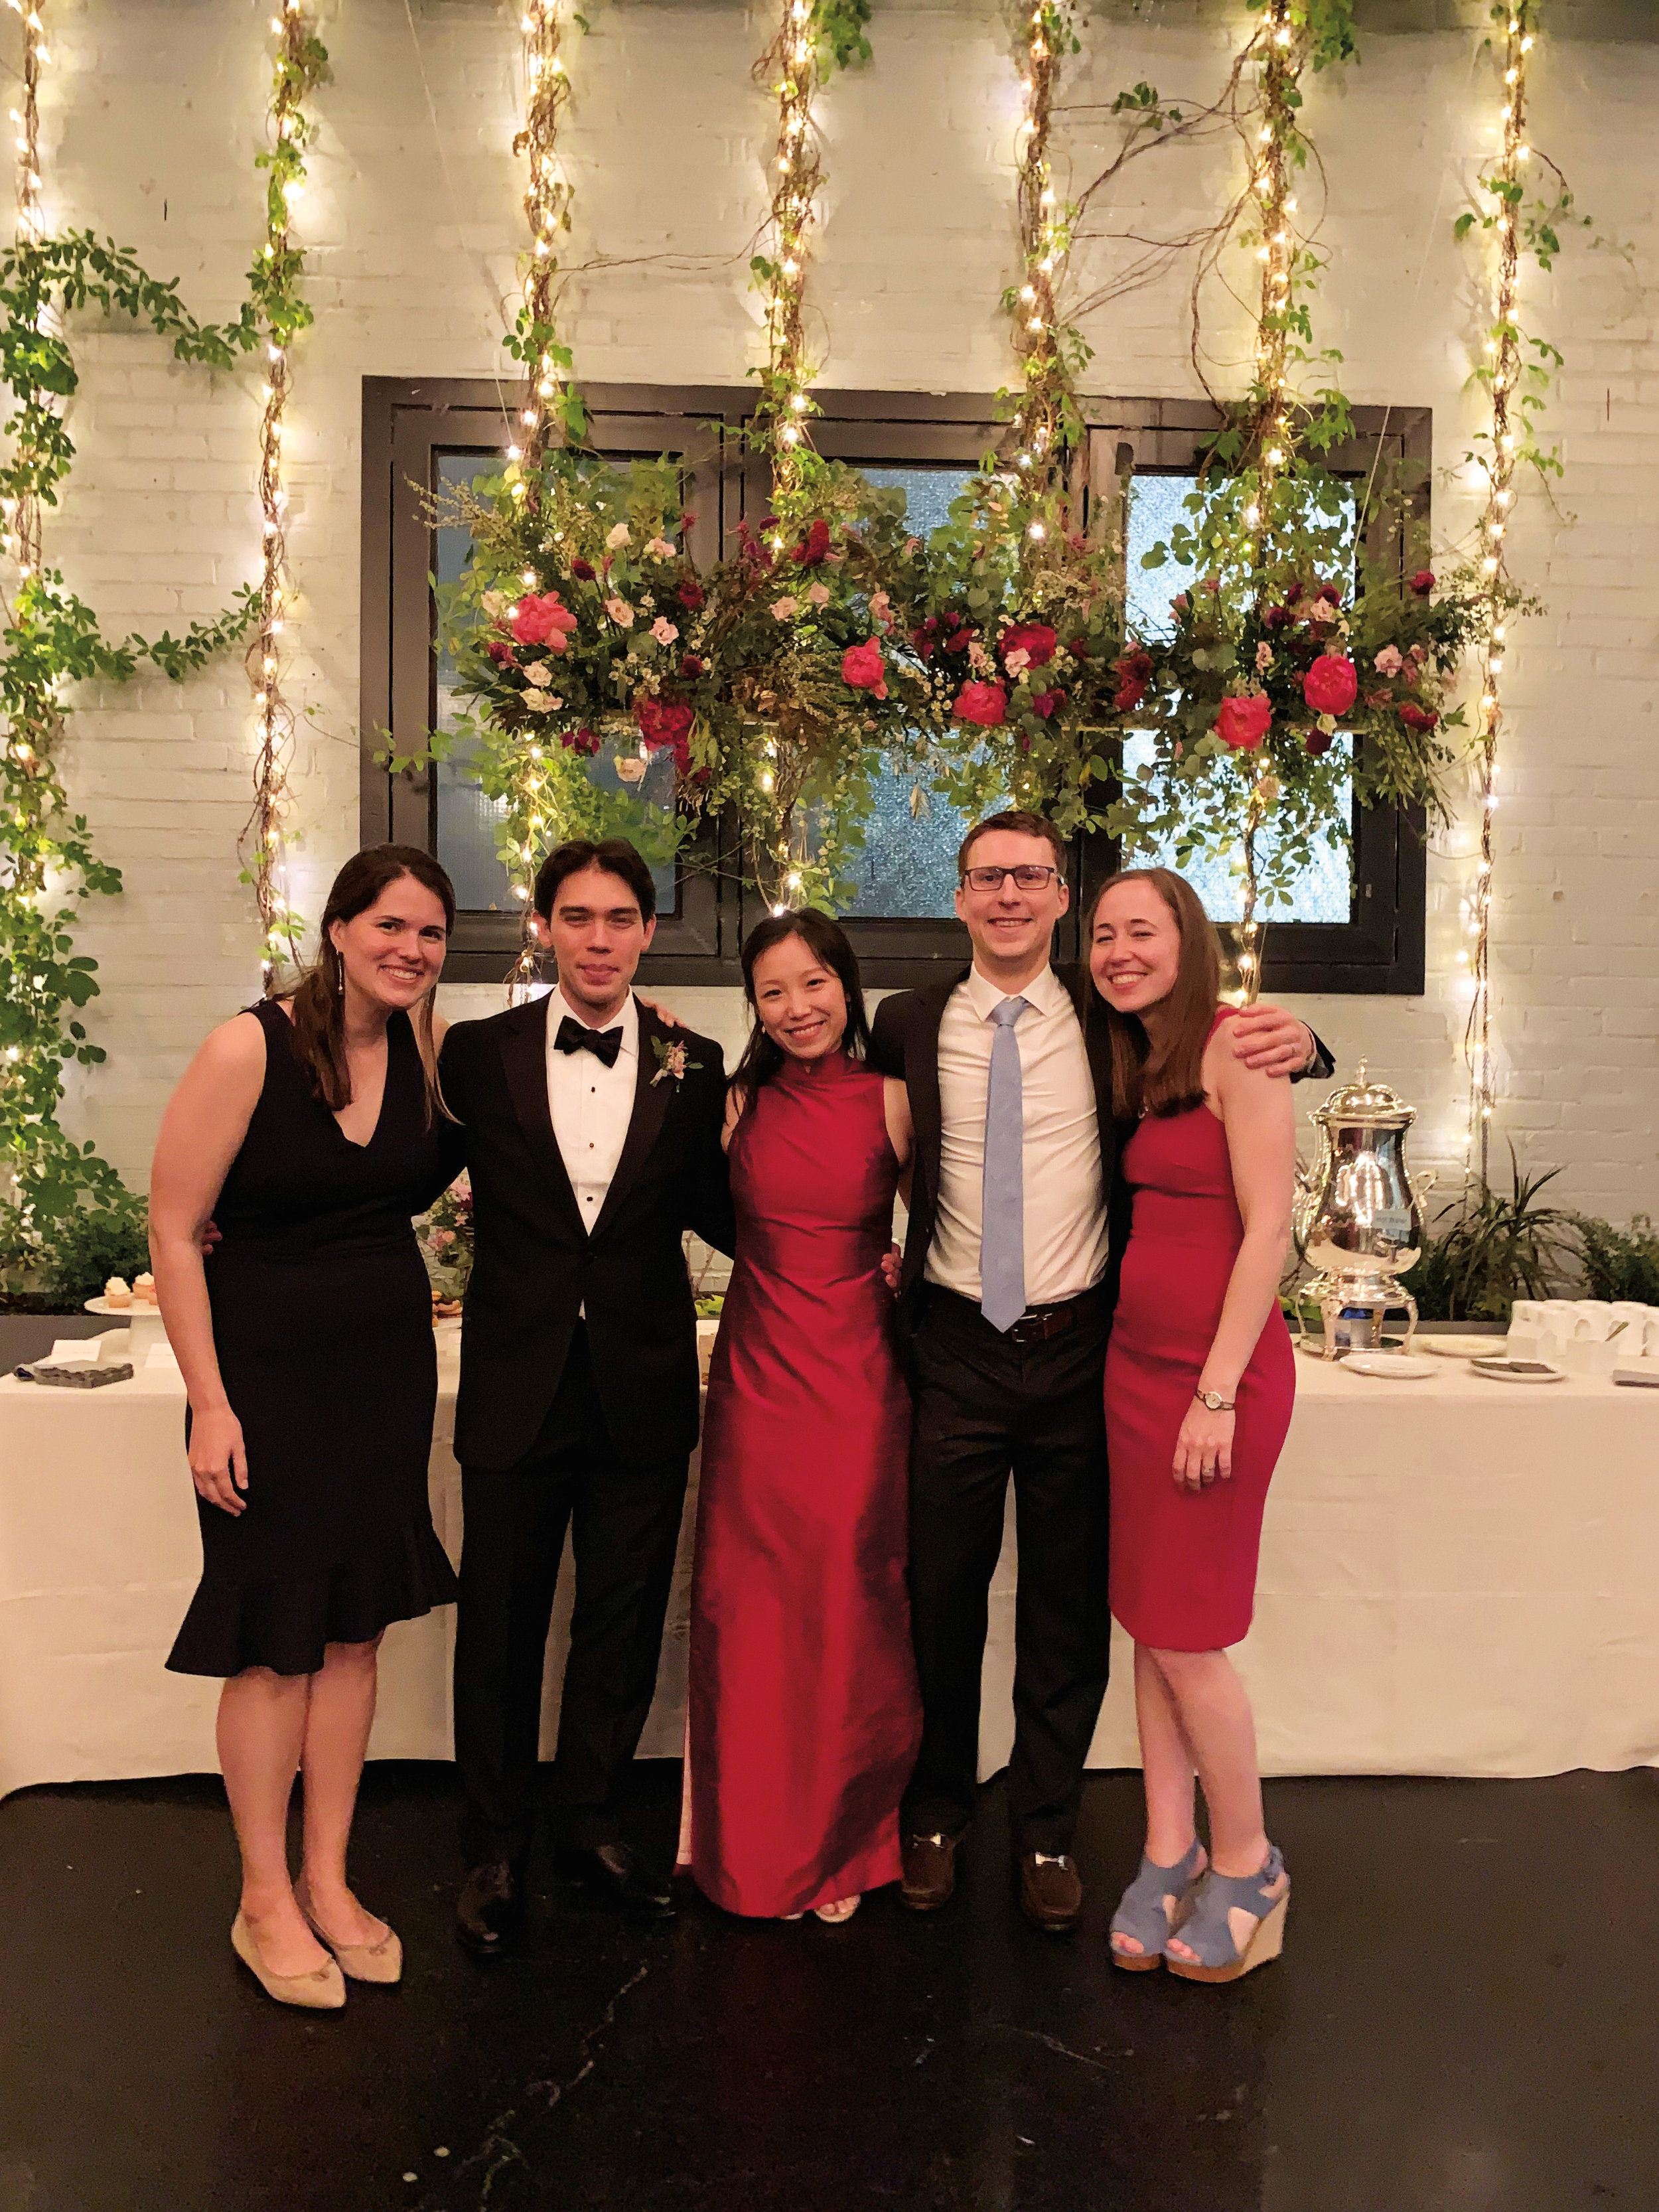 (L. to r.) Haley Duus '08, the bride and groom (Scott and Annie), Alex McLane '06 and Ellie Ferguson McLane '06 at a mutual friend's wedding.